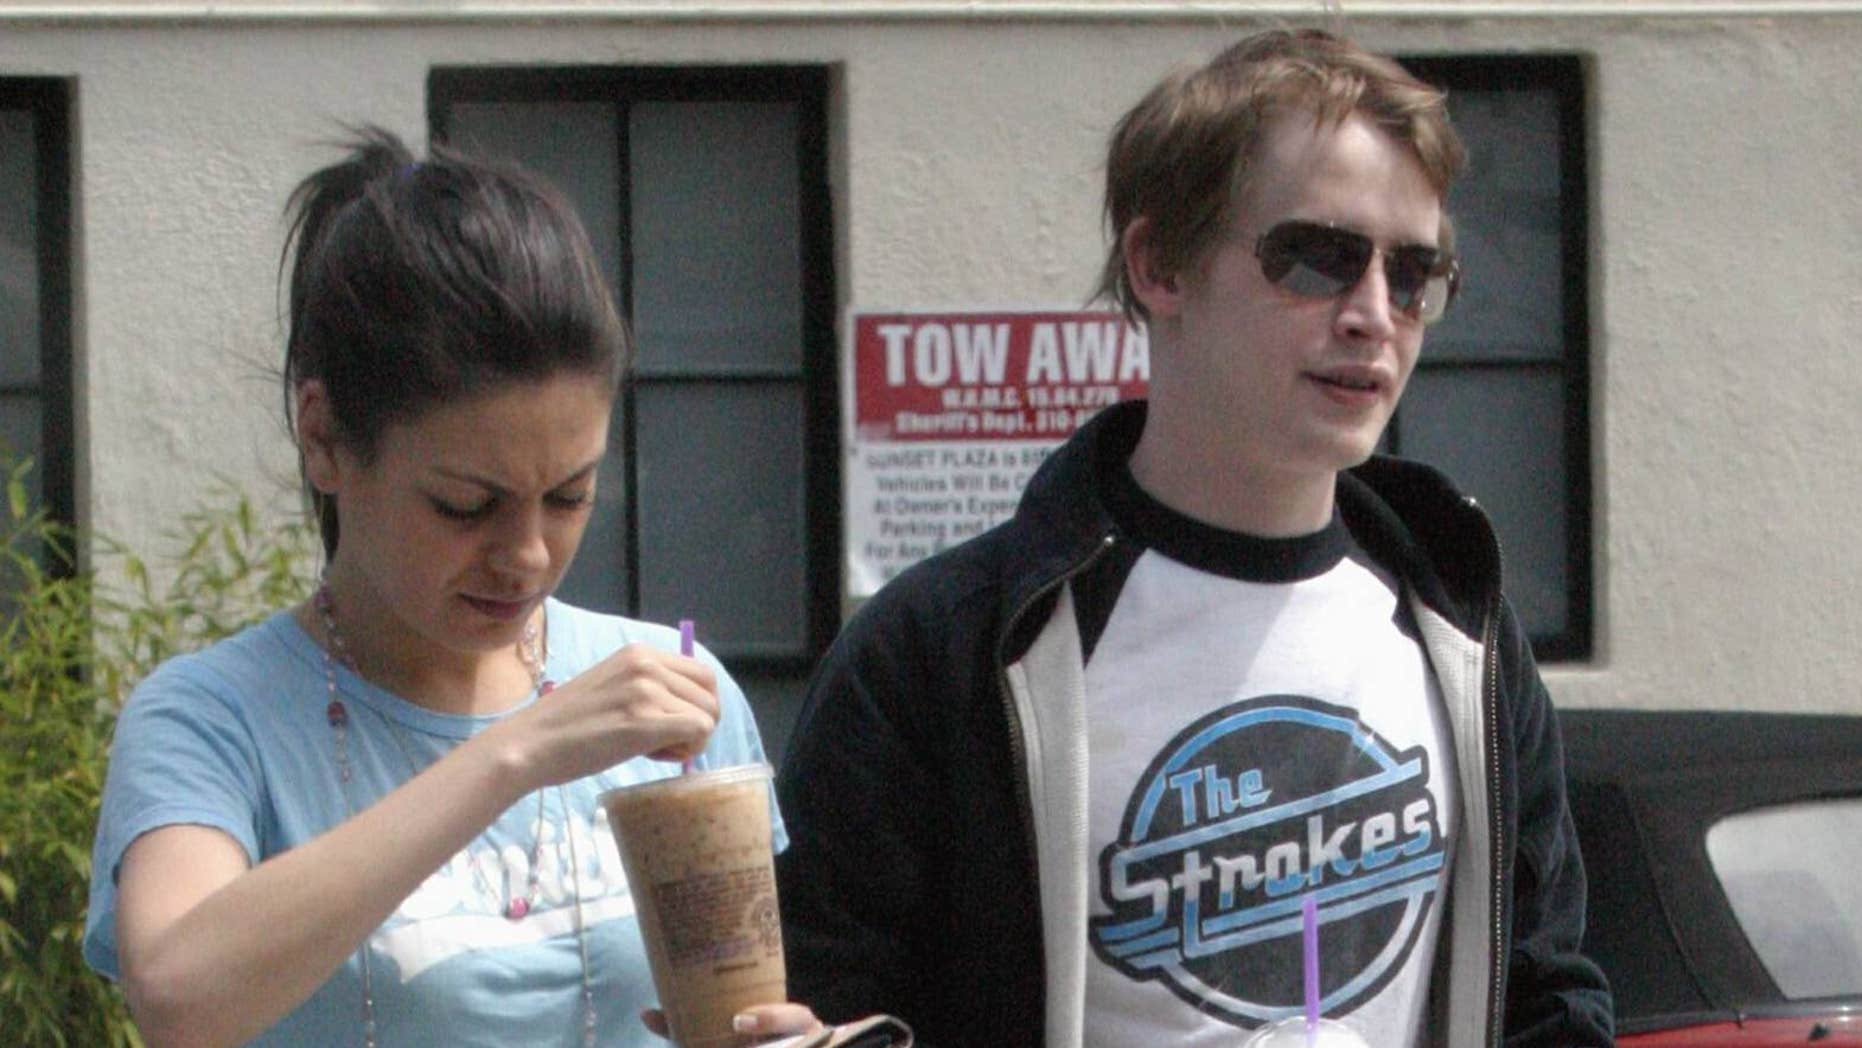 Mila Kunis (left) with then-boyfriend Macaulay Culkin after he testified at the Michael Jackson trial in 2005.